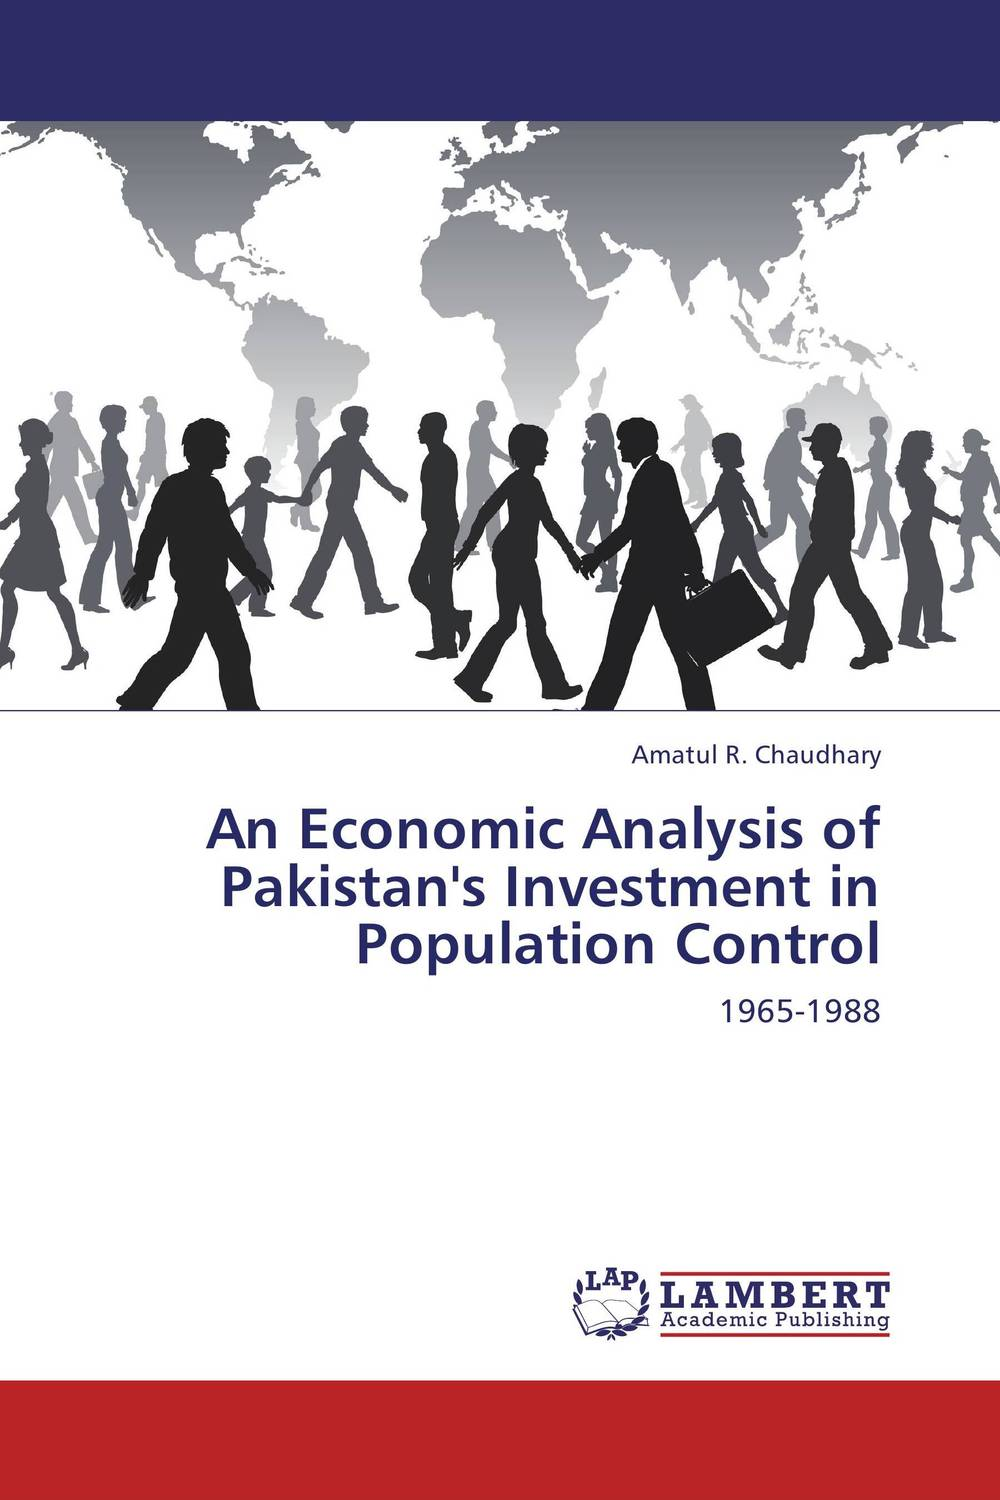 An Economic Analysis of Pakistan's Investment in Population Control dr babar zaheer butt and dr kashif ur rehman economic factors and stock returns sectoral analysis